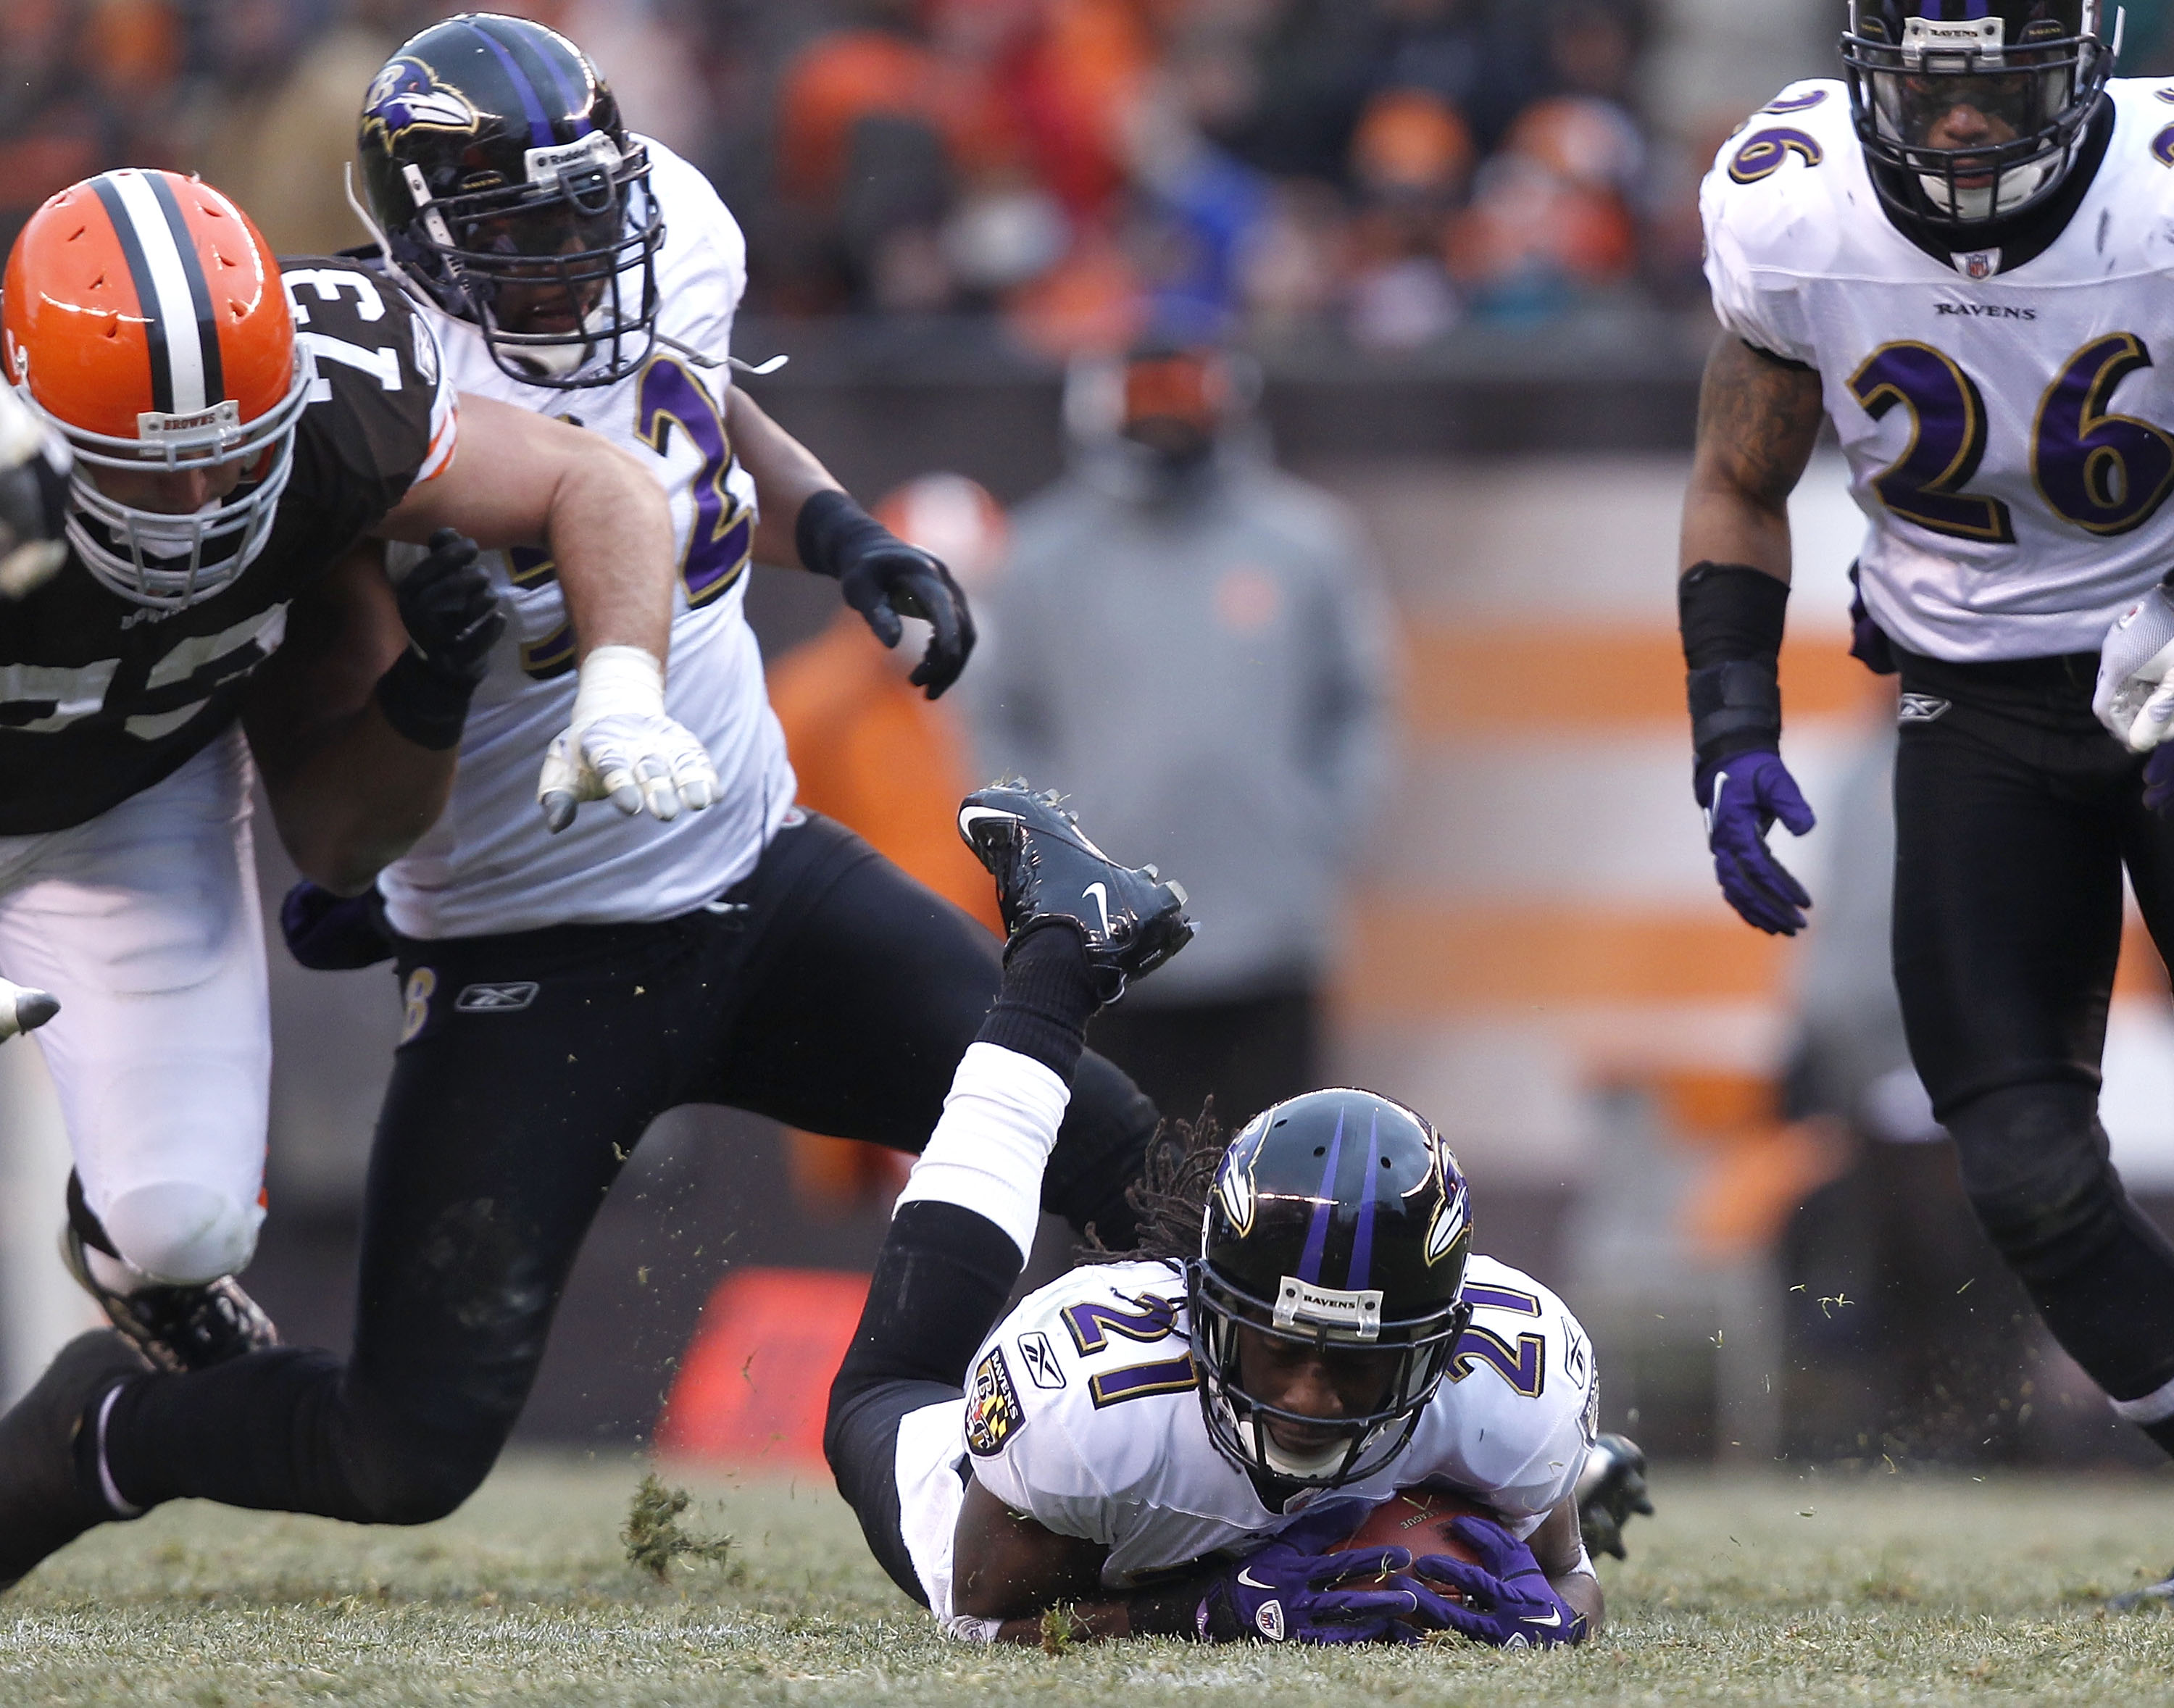 CLEVELAND - DECEMBER 26:  Cornerback Lardarius Webb #21 of the Baltimore Ravens recovers a fumble as Ray Lewis #52, Dawan Landry #26 and lineman Joe Thomas #73 of the Cleveland Browns look on at Cleveland Browns Stadium on December 26, 2010 in Cleveland,